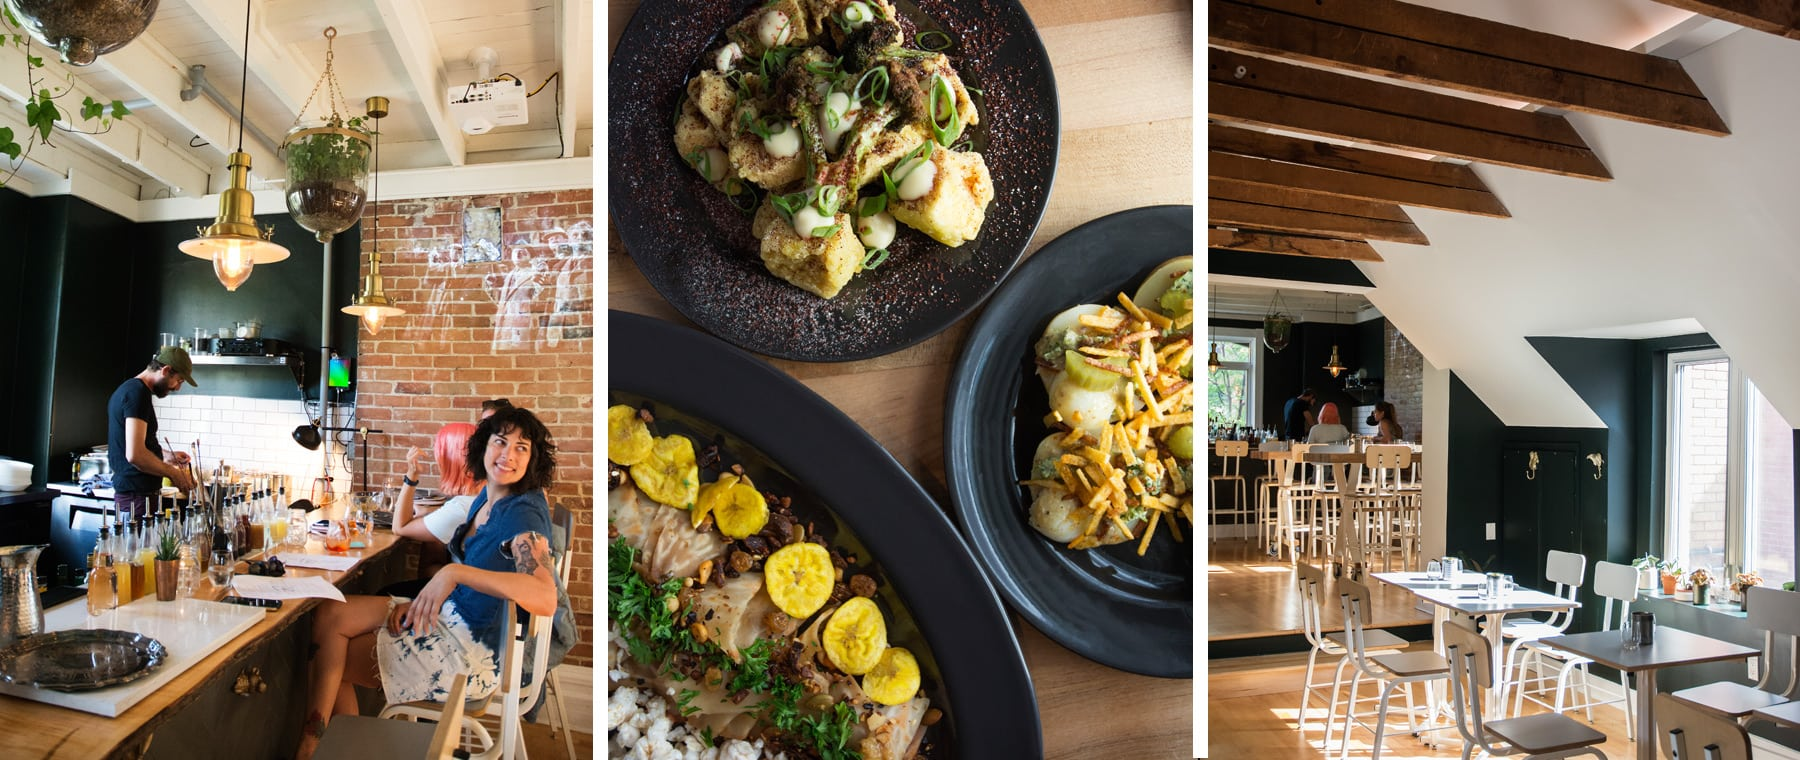 Where To Eat Now: Jabberwocky and Union Local 613